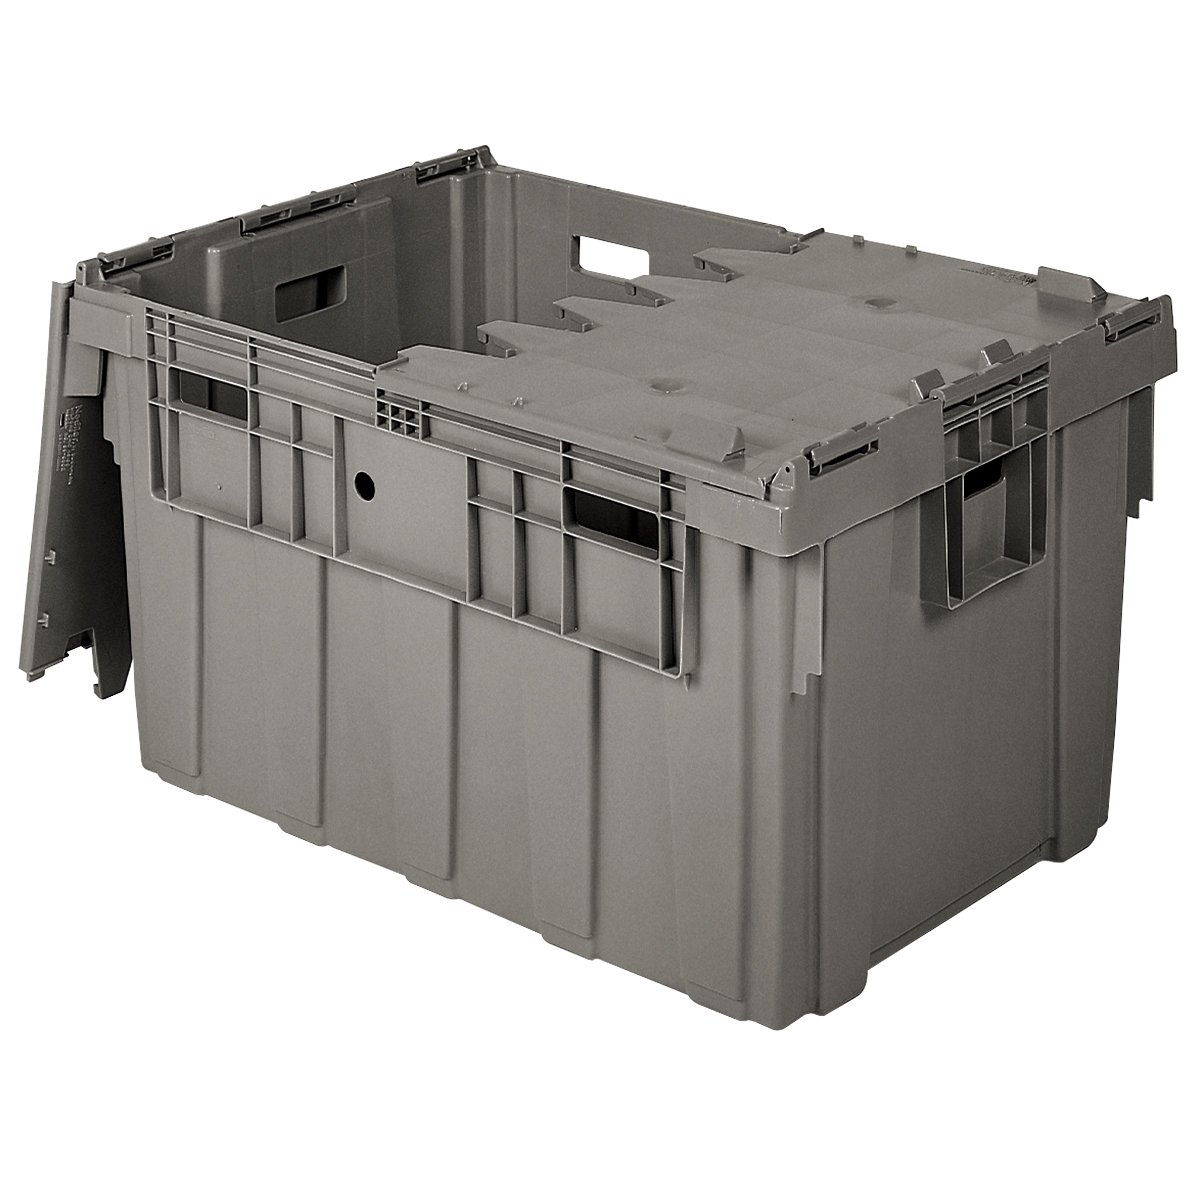 Amazon.com: Buckhorn AS3424201201000 Attached Lid Flip Top Storage And  Distribution Plastic Tote, 34 Inch X 24 Inch X 20 Inch, Grey: Home  Improvement